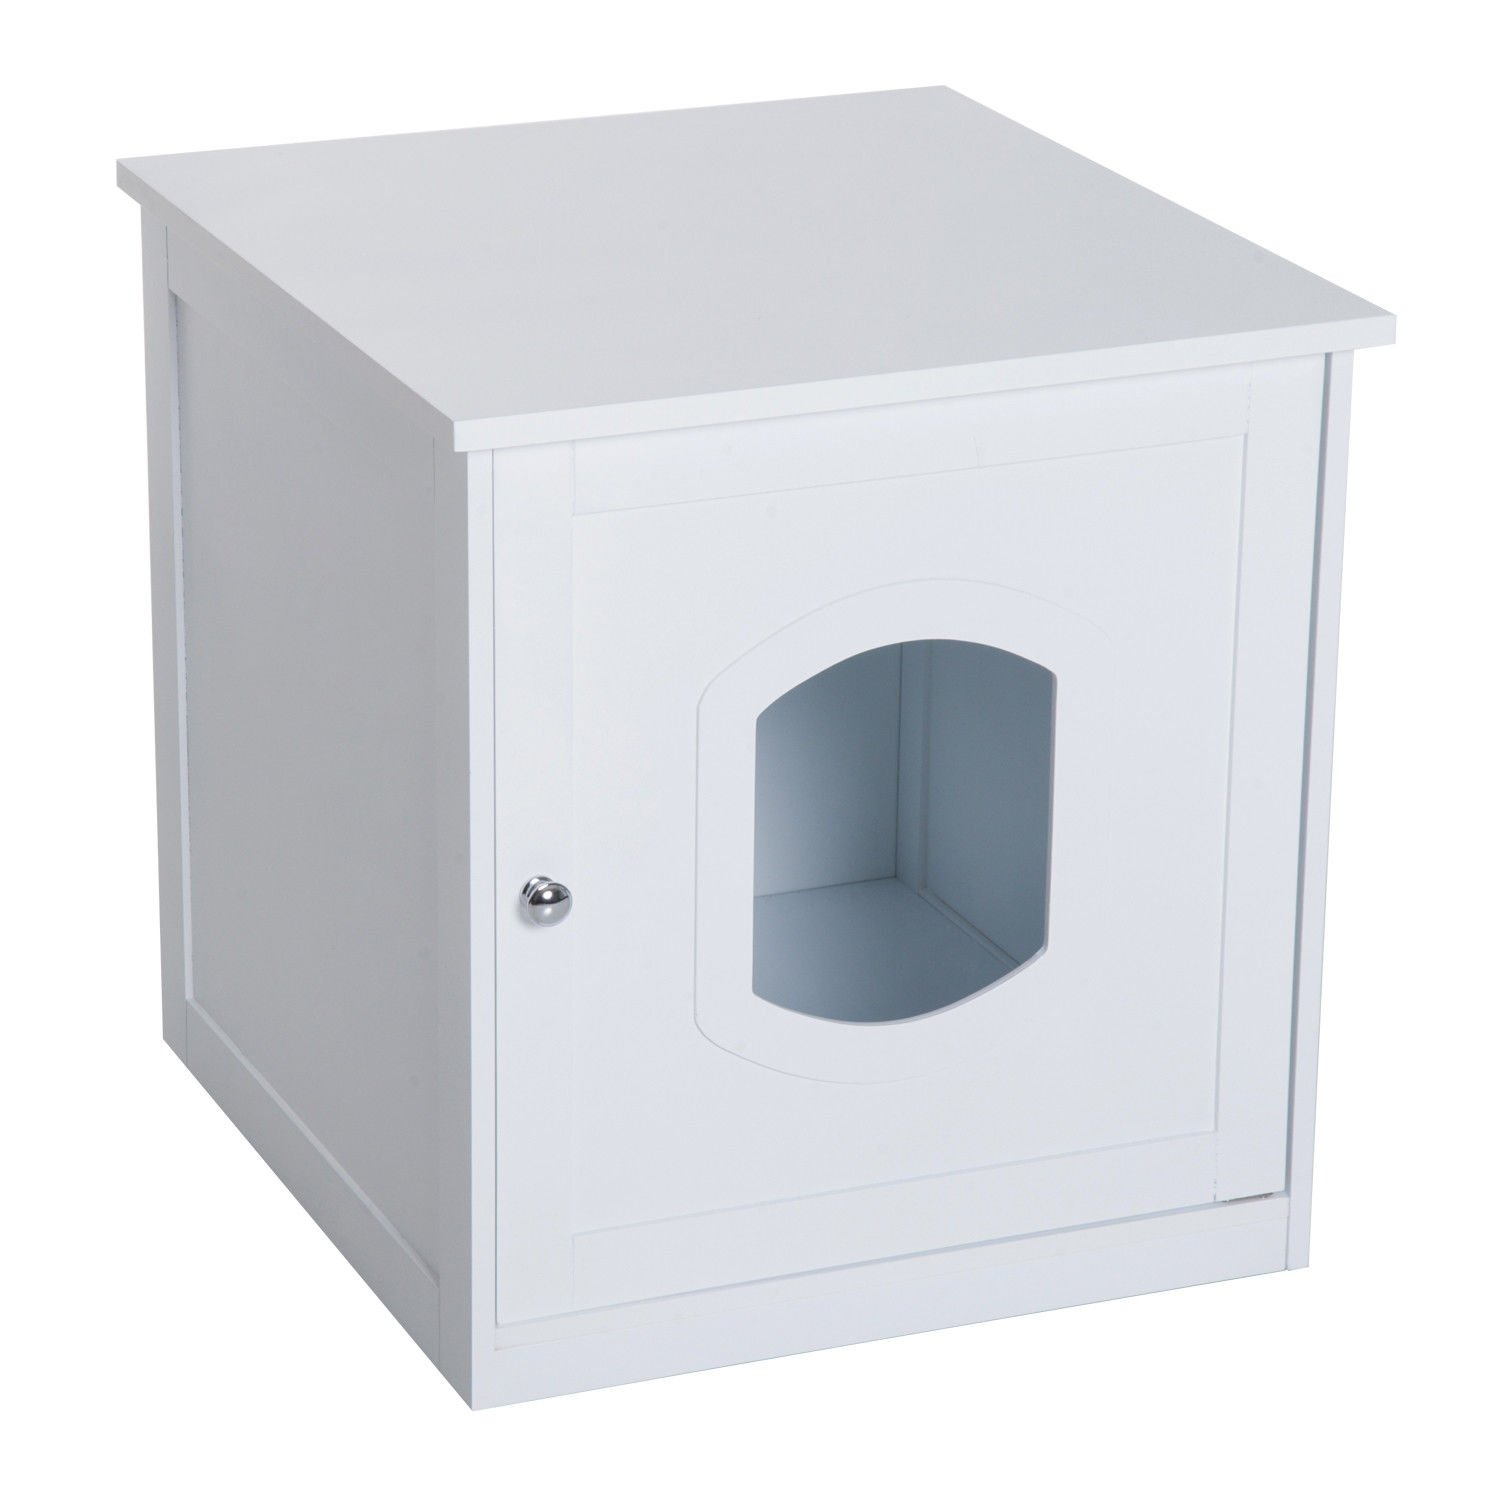 PawHut Decorative Wooden Covered Cat House Side End Table Mess Free Cat Litter Box Hideaway Cabinet Enclosure - White by PawHut